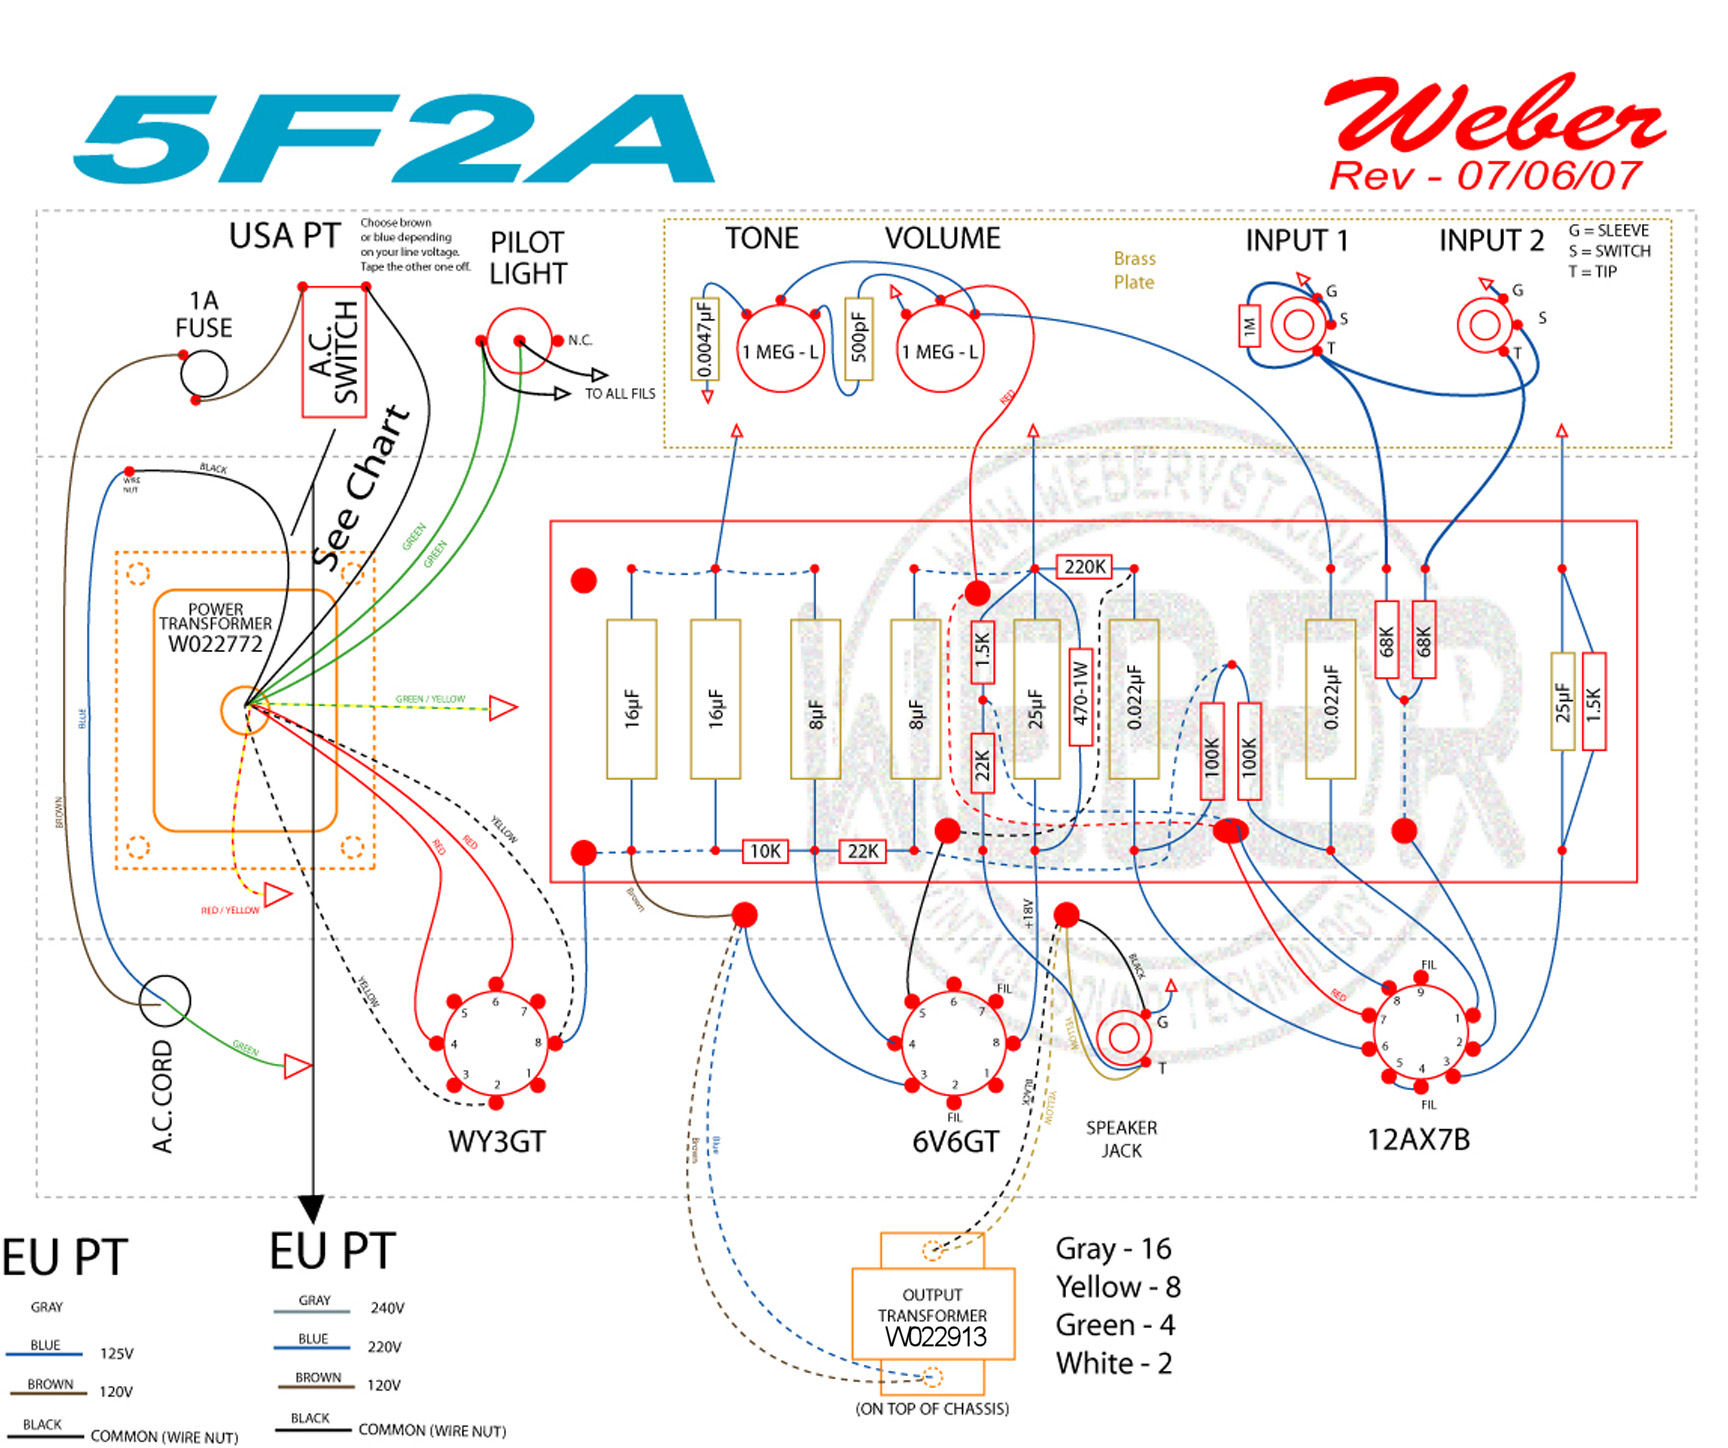 5f2a_layout epiphone valve junior rebuild 5f2a princeton telecaster guitar 5f1 wiring diagram at gsmportal.co